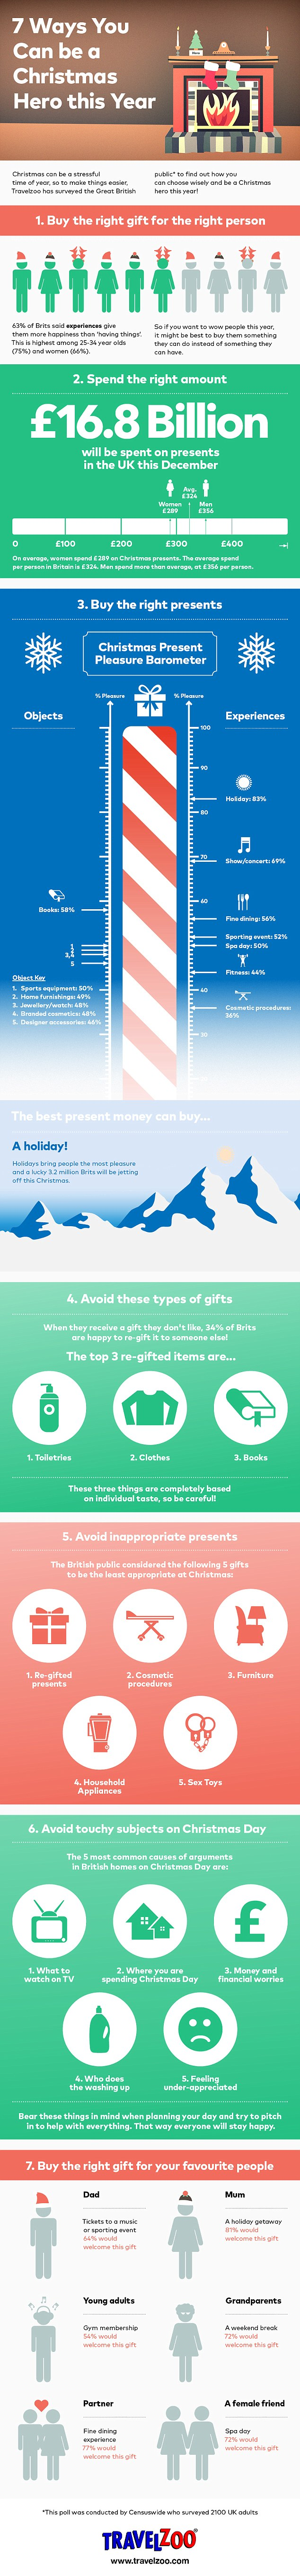 Top Holiday gifts infographic